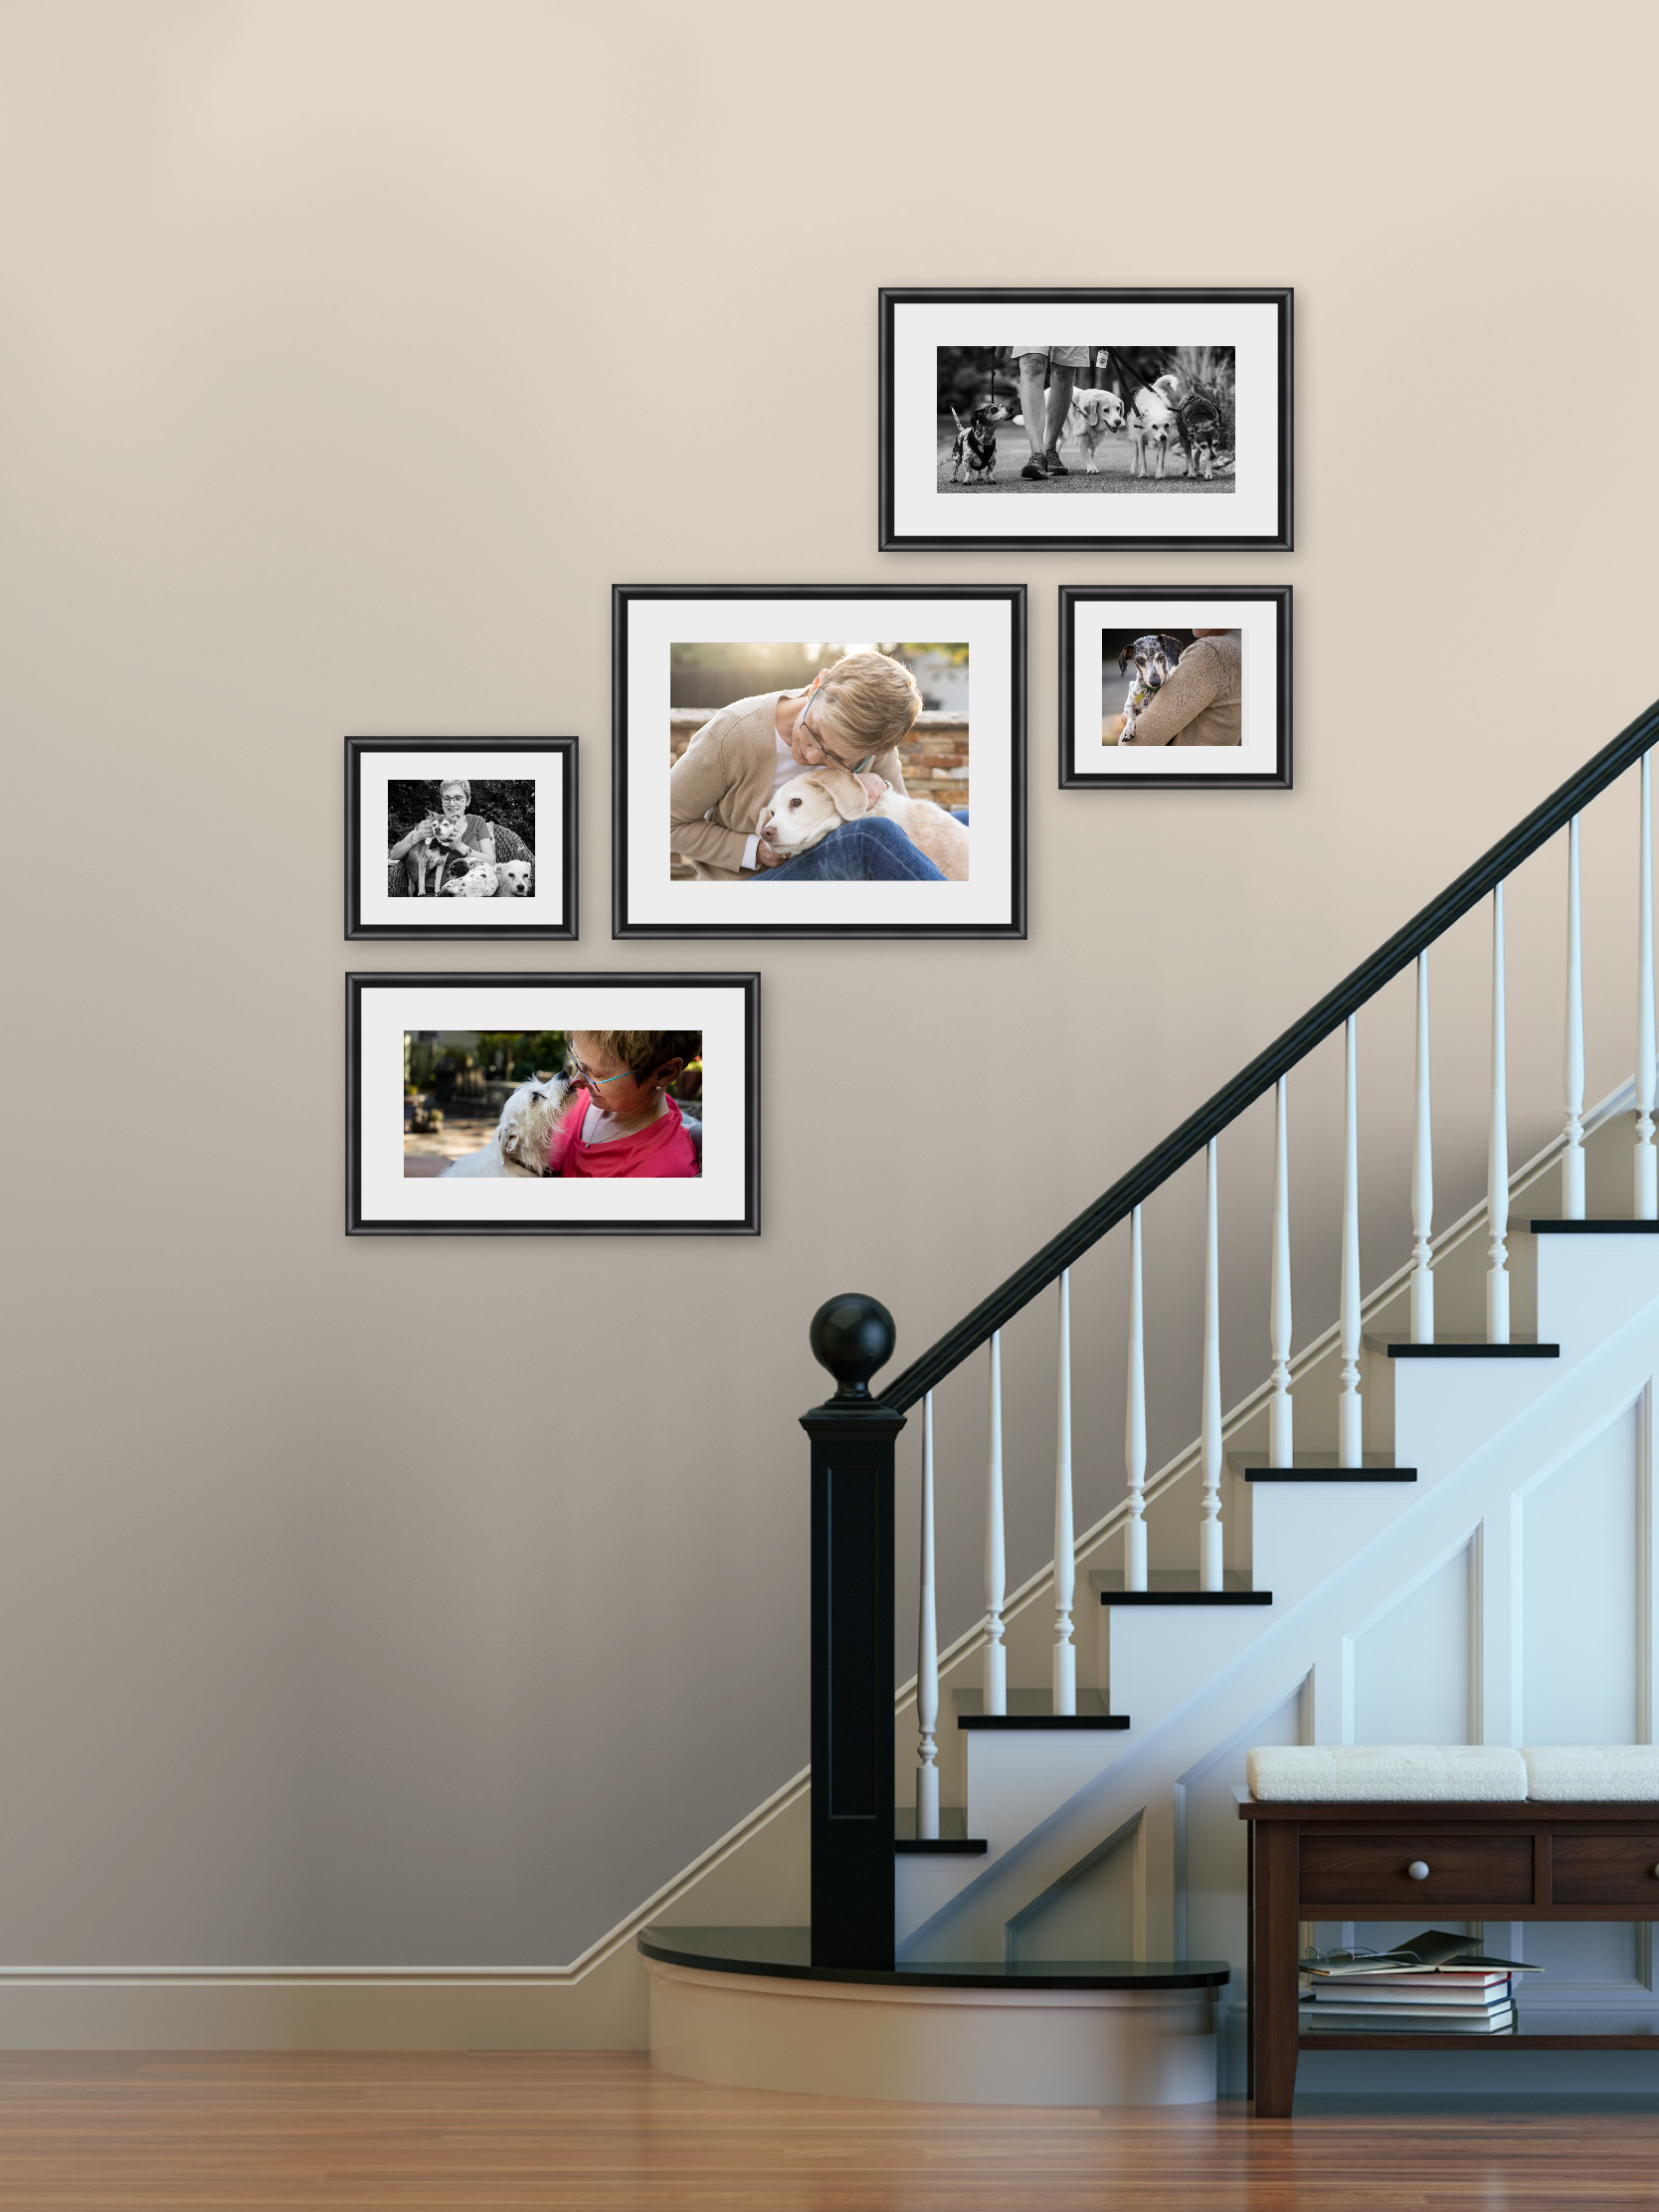 Pet photography artwork, wall gallery